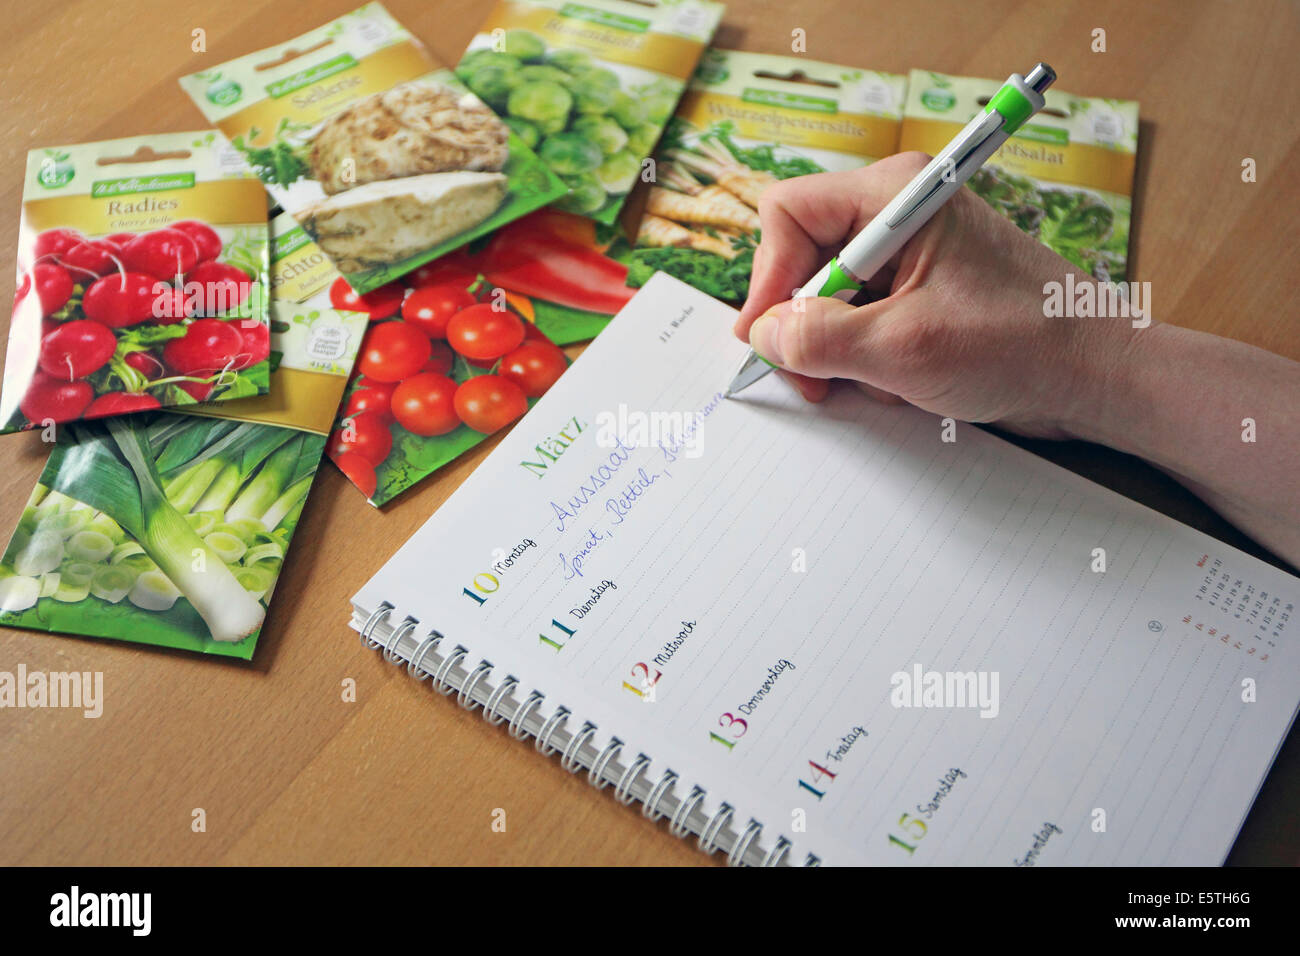 Sowing dates are noted on a calendar next to packets of various seeds - Stock Image